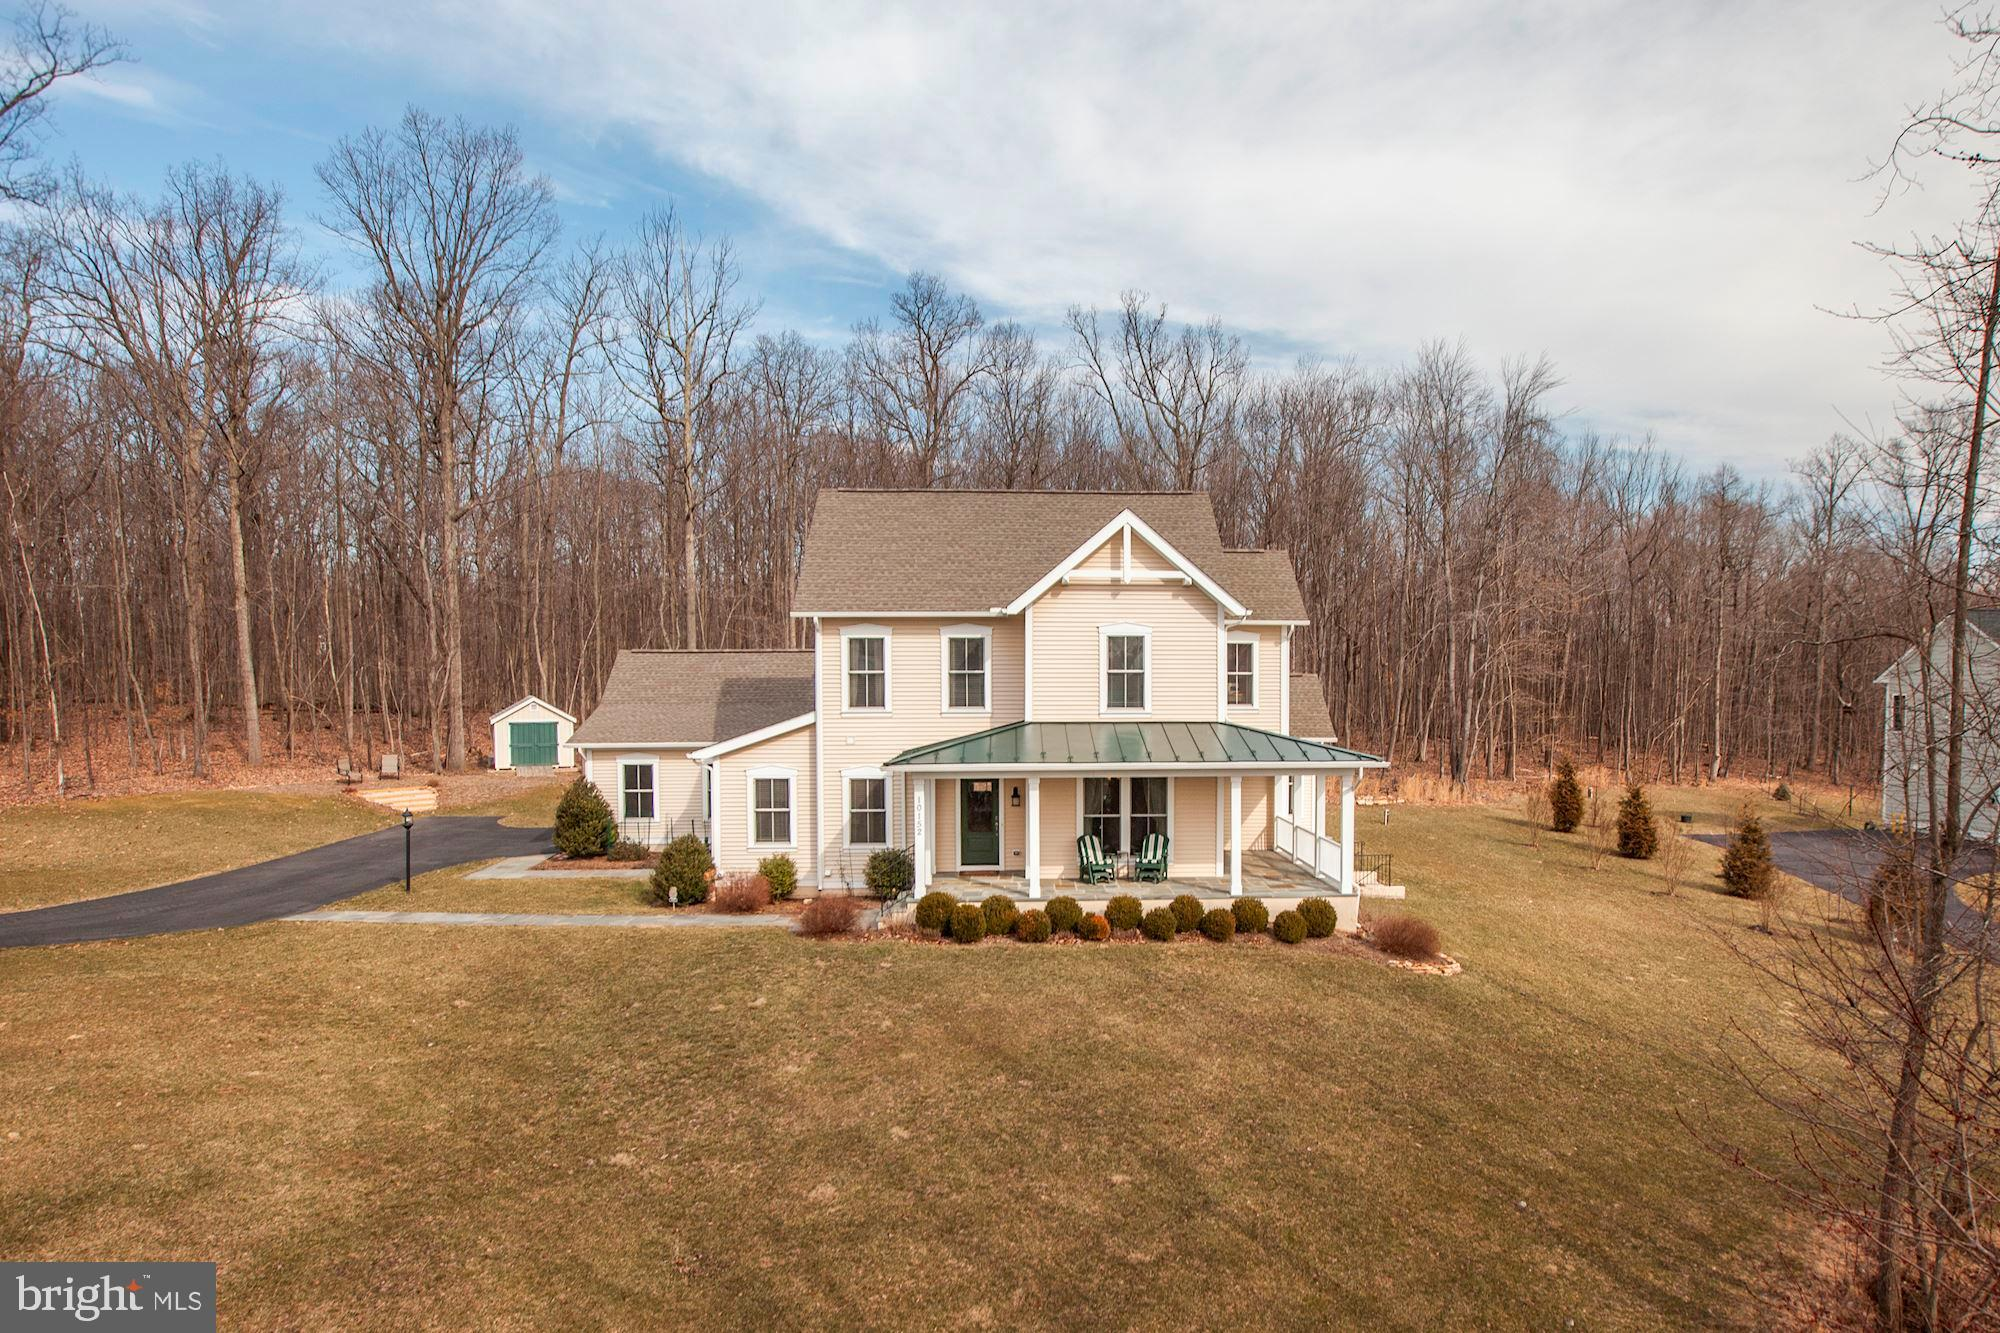 10152 SYCAMORE HOLLOW LANE, GERMANTOWN, MD 20876